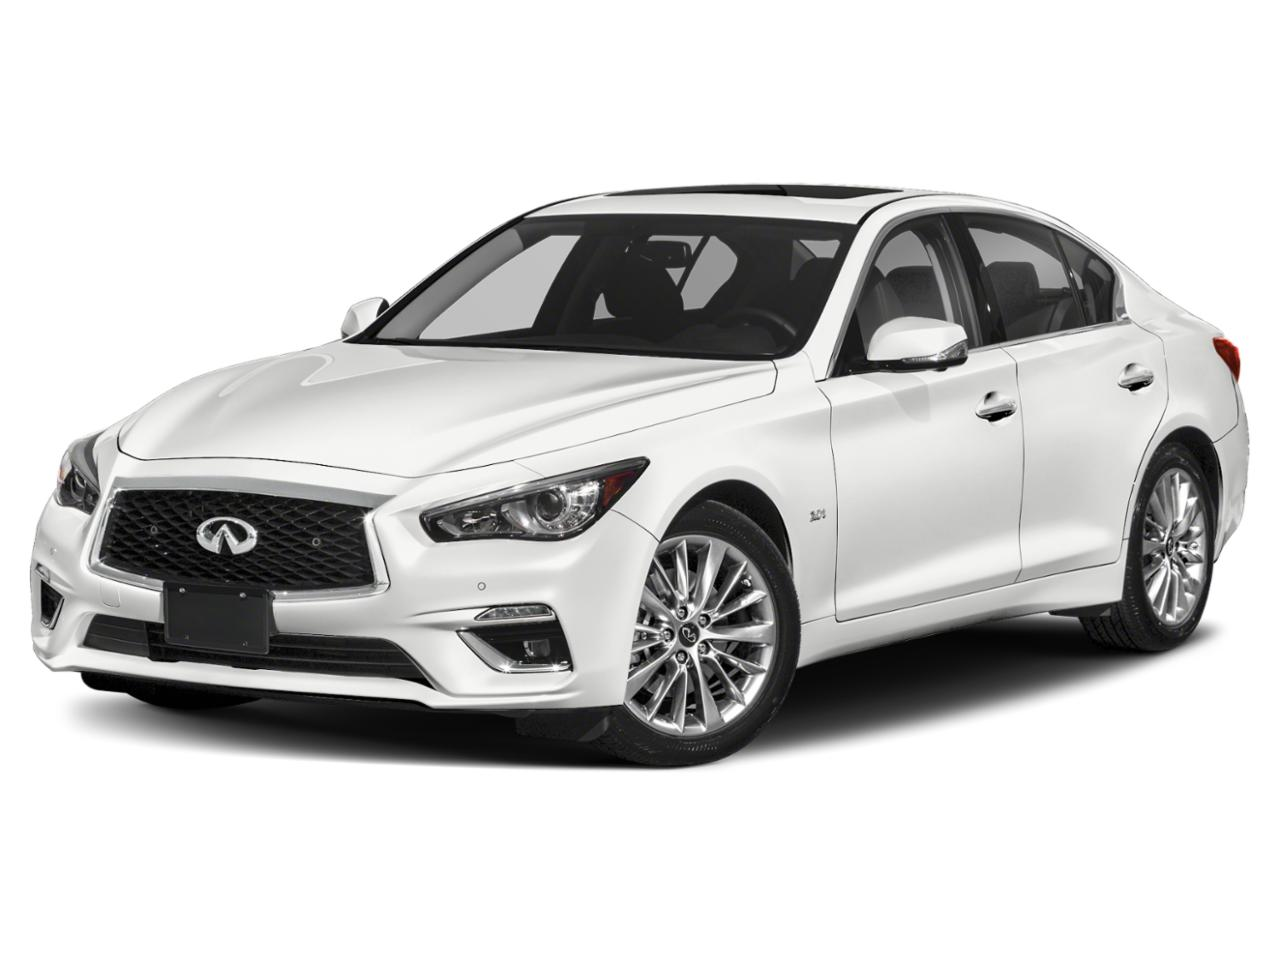 2021 INFINITI Q50 Vehicle Photo in Fort Worth, TX 76132